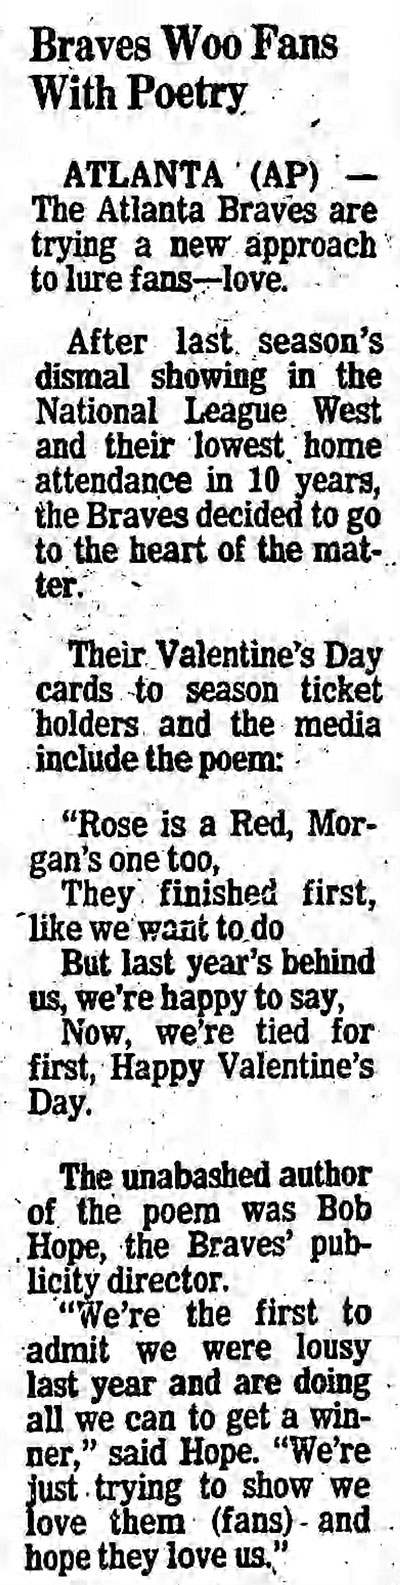 Atlanta Braves Valentine's Day Poem